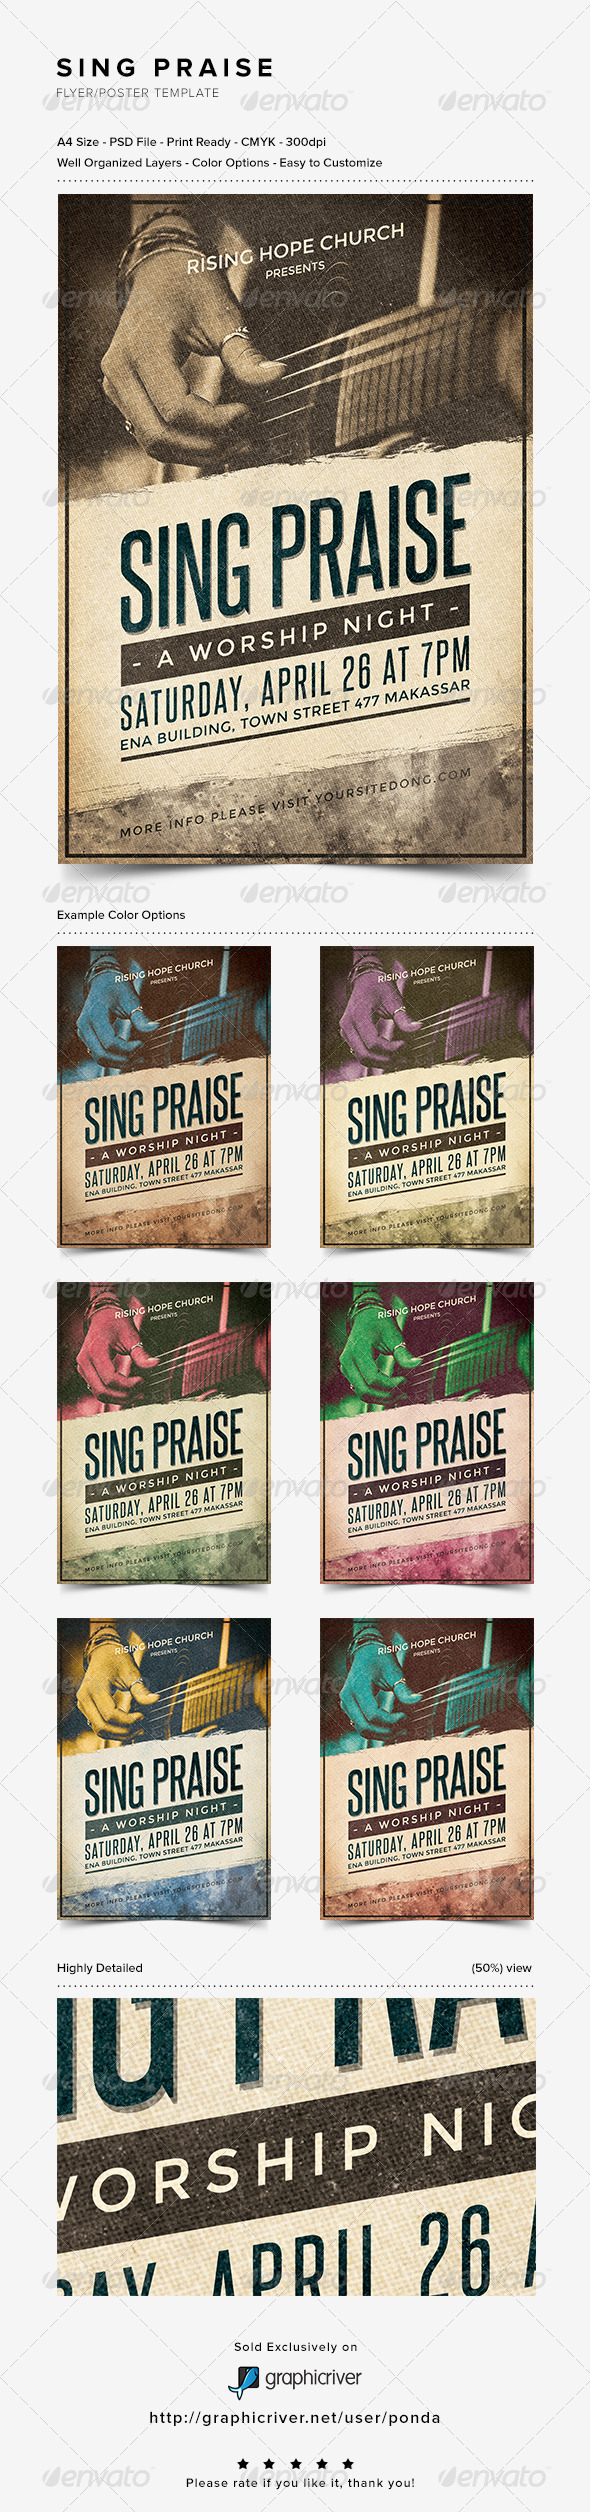 Sing Praise Flyer/Poster Template - Church Flyers